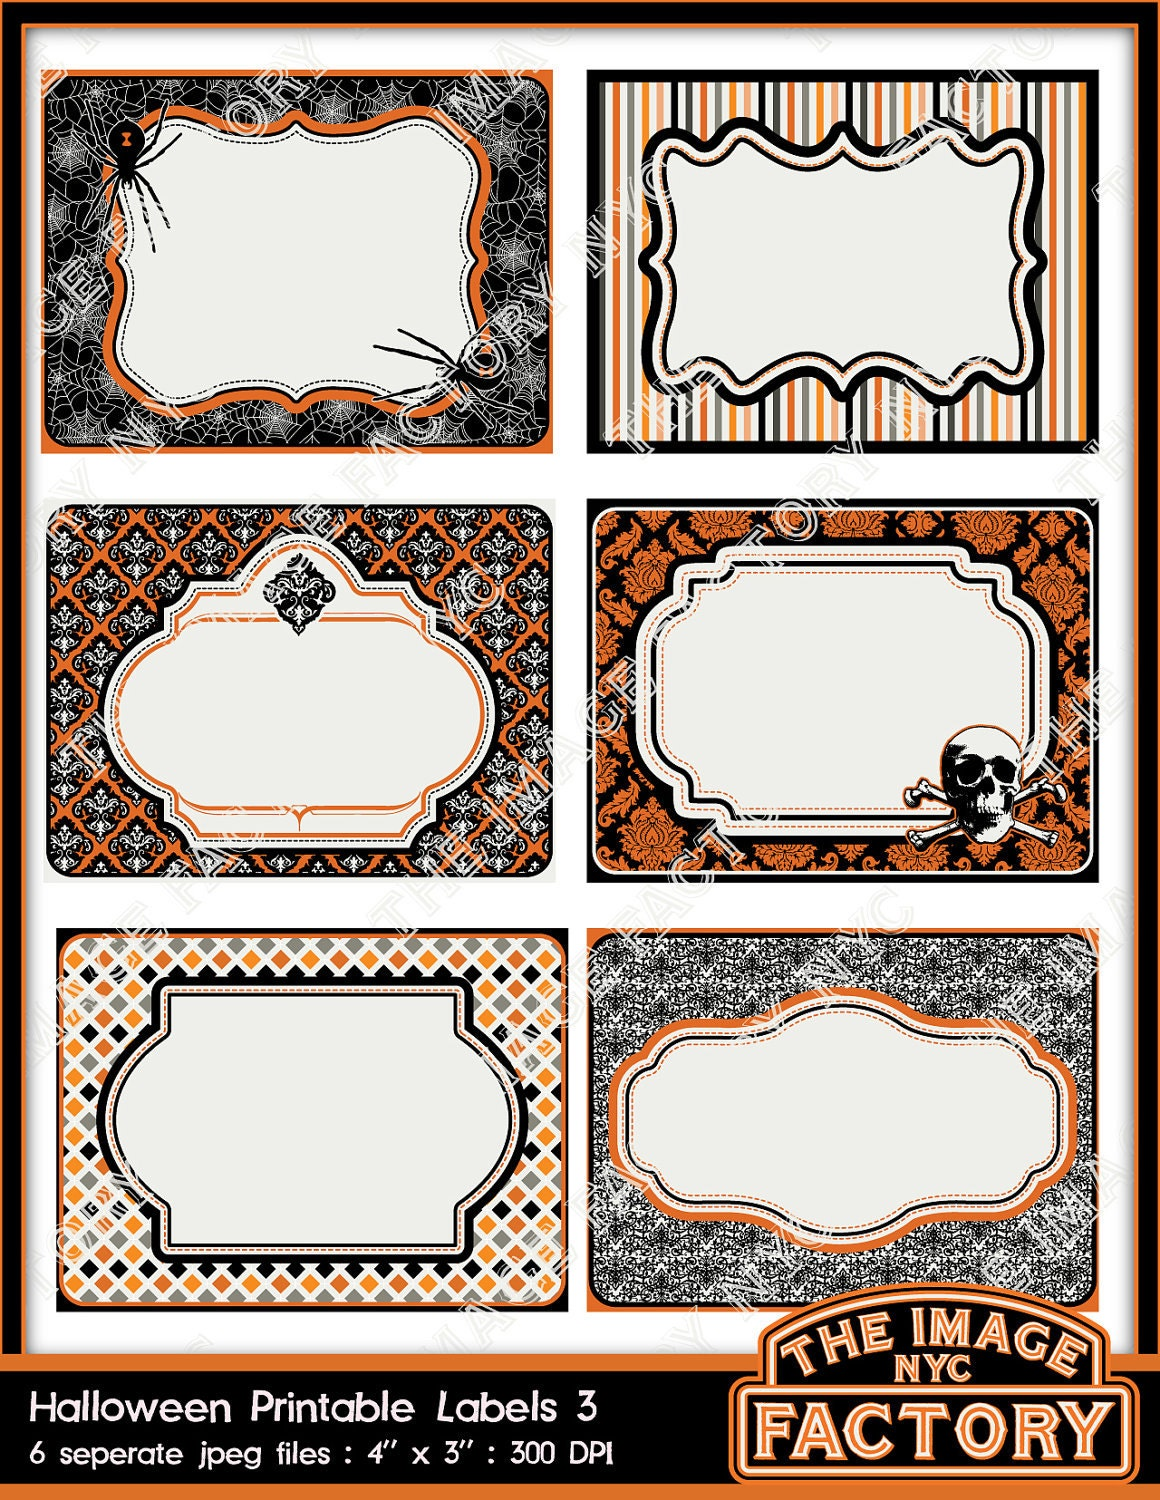 It's just a picture of Terrible Halloween Labels Printables